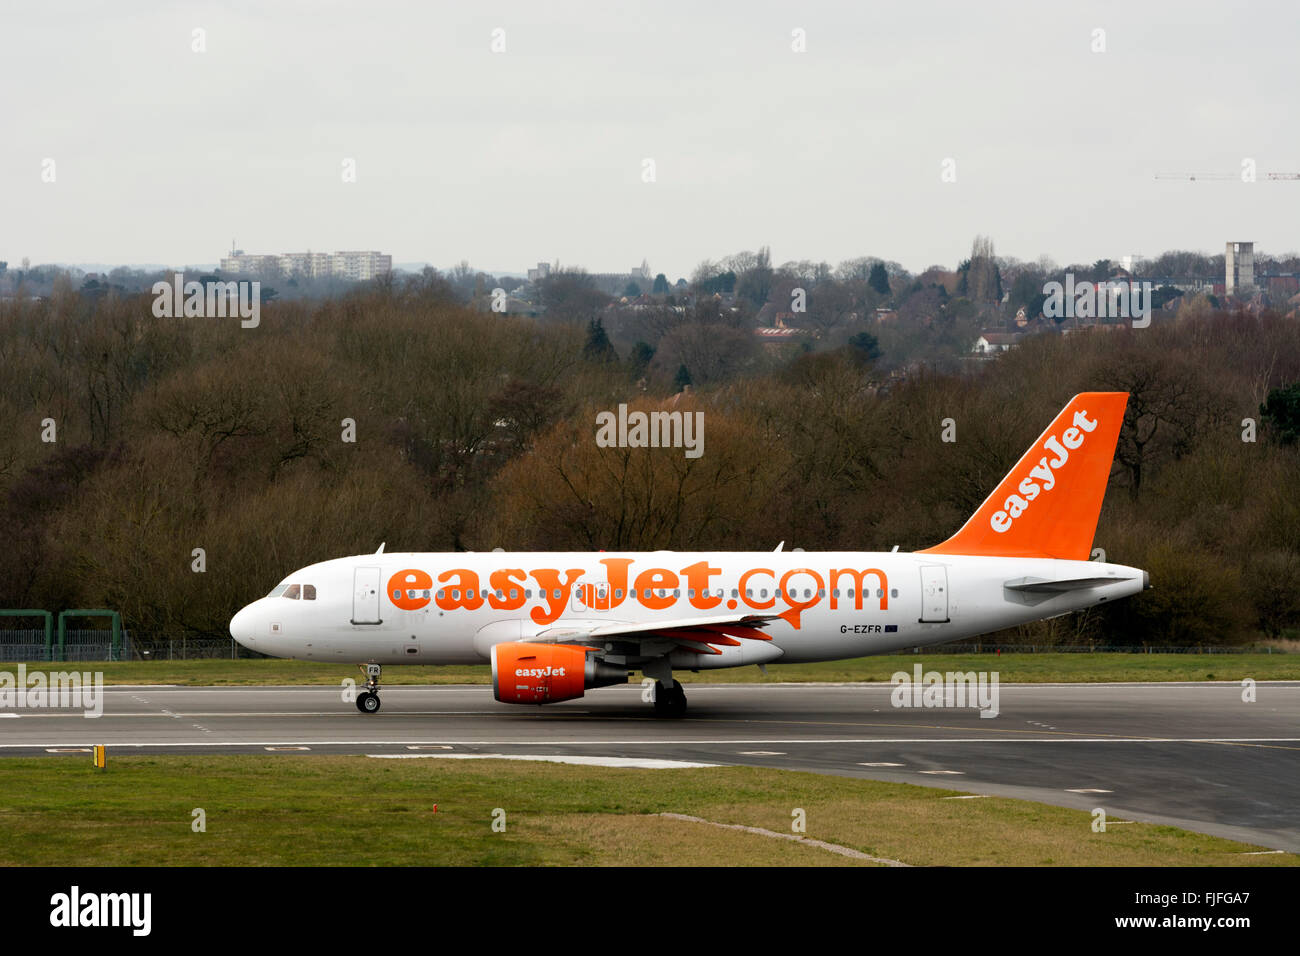 Easyjet Airbus A318 about to take off at Birmingham Airport, UK - Stock Image